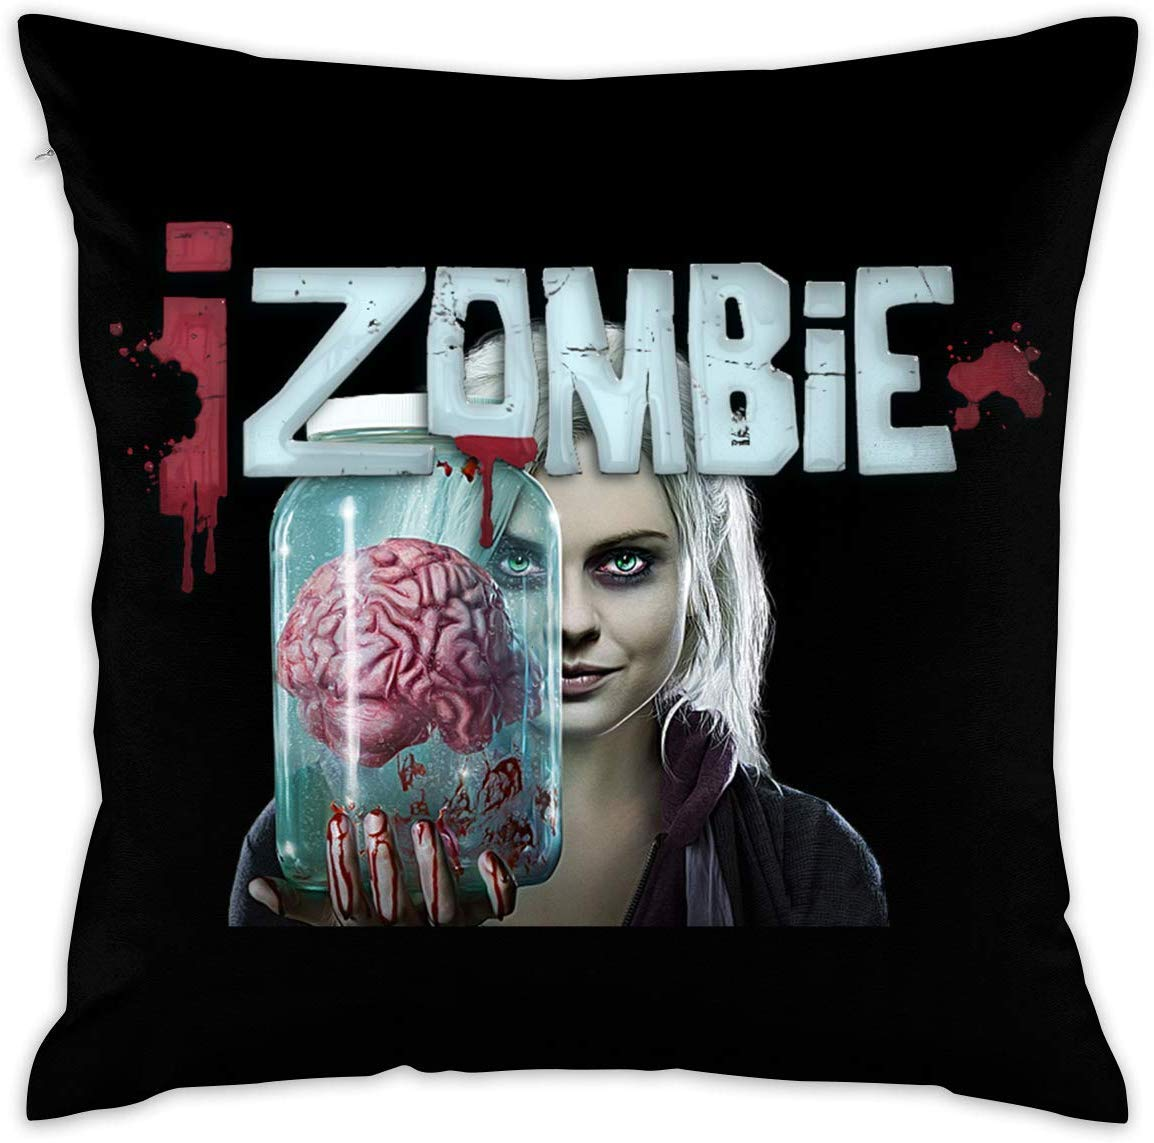 MKLHAT IZombie Season Decorative Throw Pillow Covers Case Pillowcases18 X 18 inch